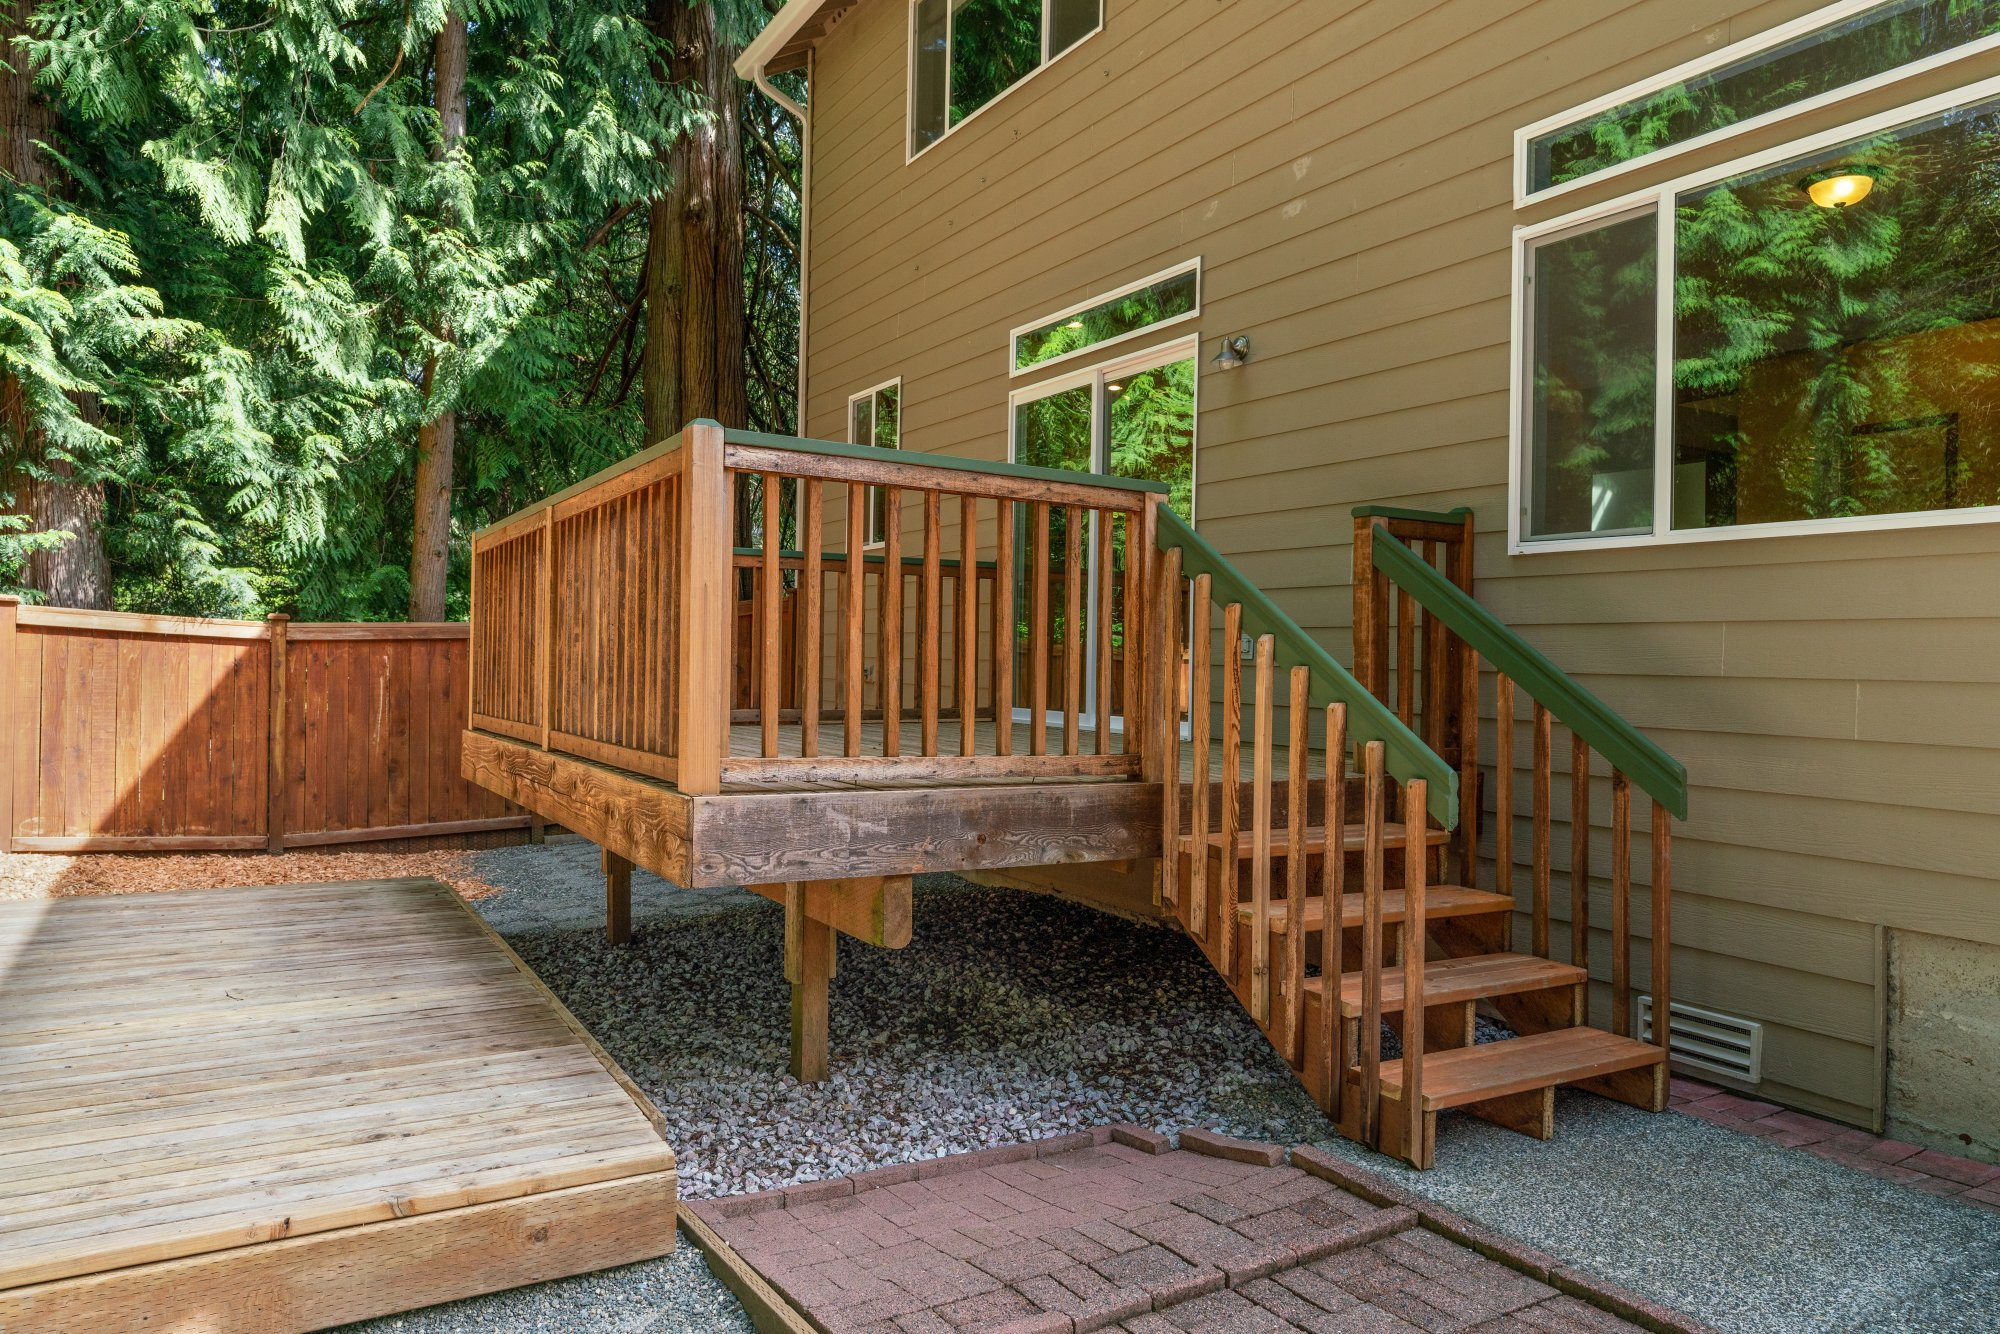 018-2946Northeast178thStreet-LakeForestPark-WA-98155-SMALL